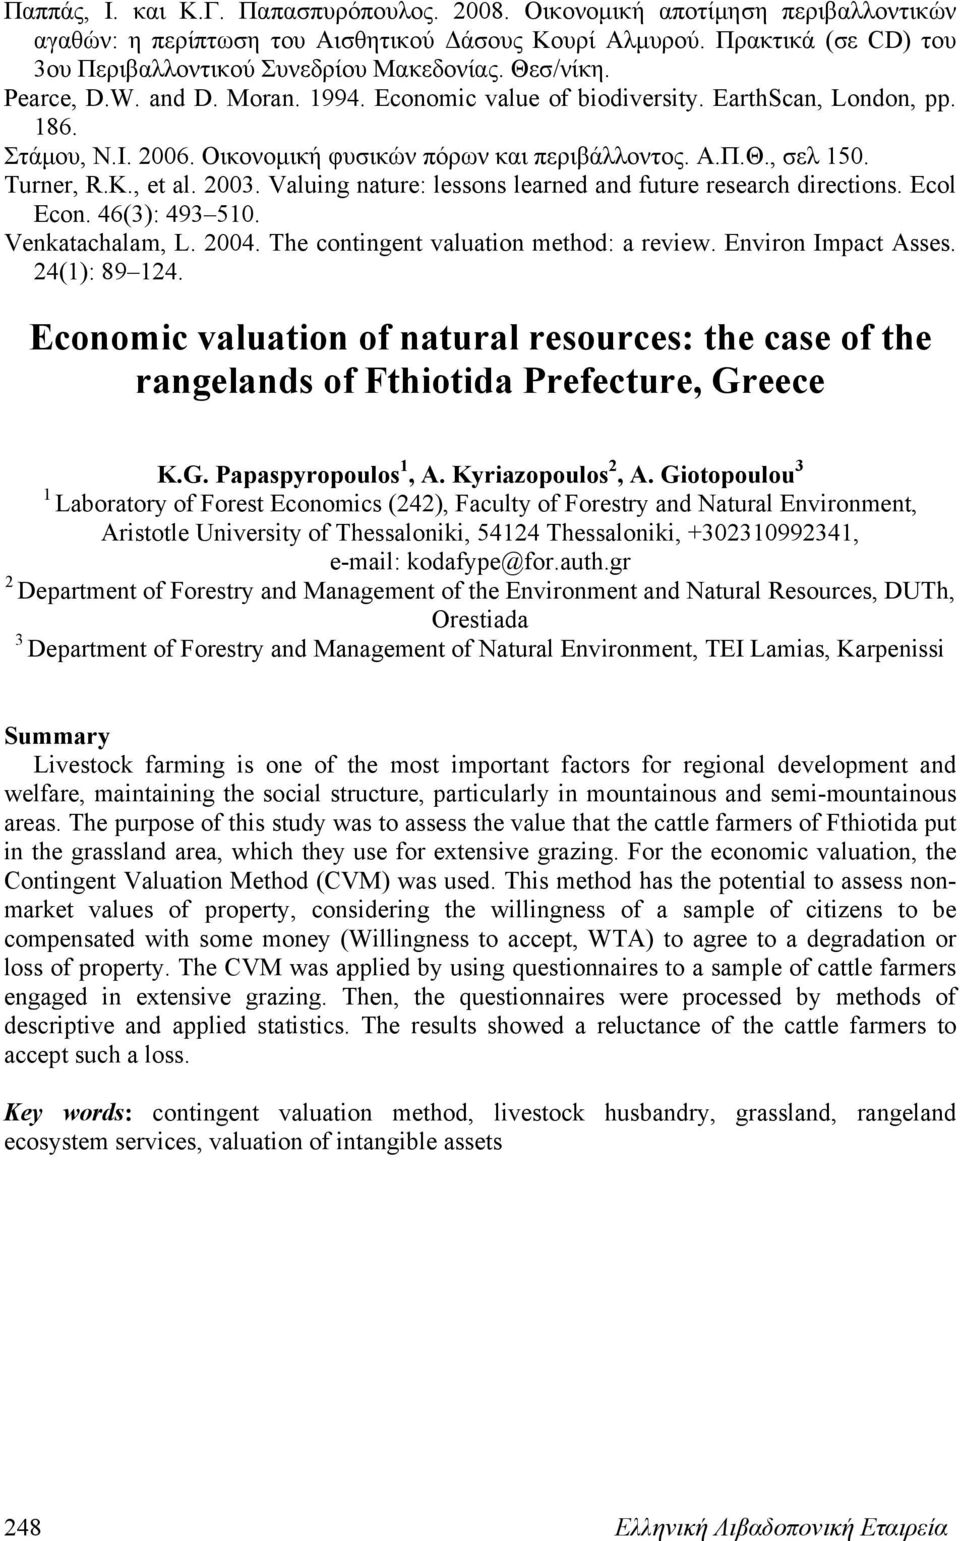 , et al. 2003. Valuing nature: lessons learned and future research directions. Ecol Econ. 46(3): 493 510. Venkatachalam, L. 2004. The contingent valuation method: a review. Environ Impact Asses.